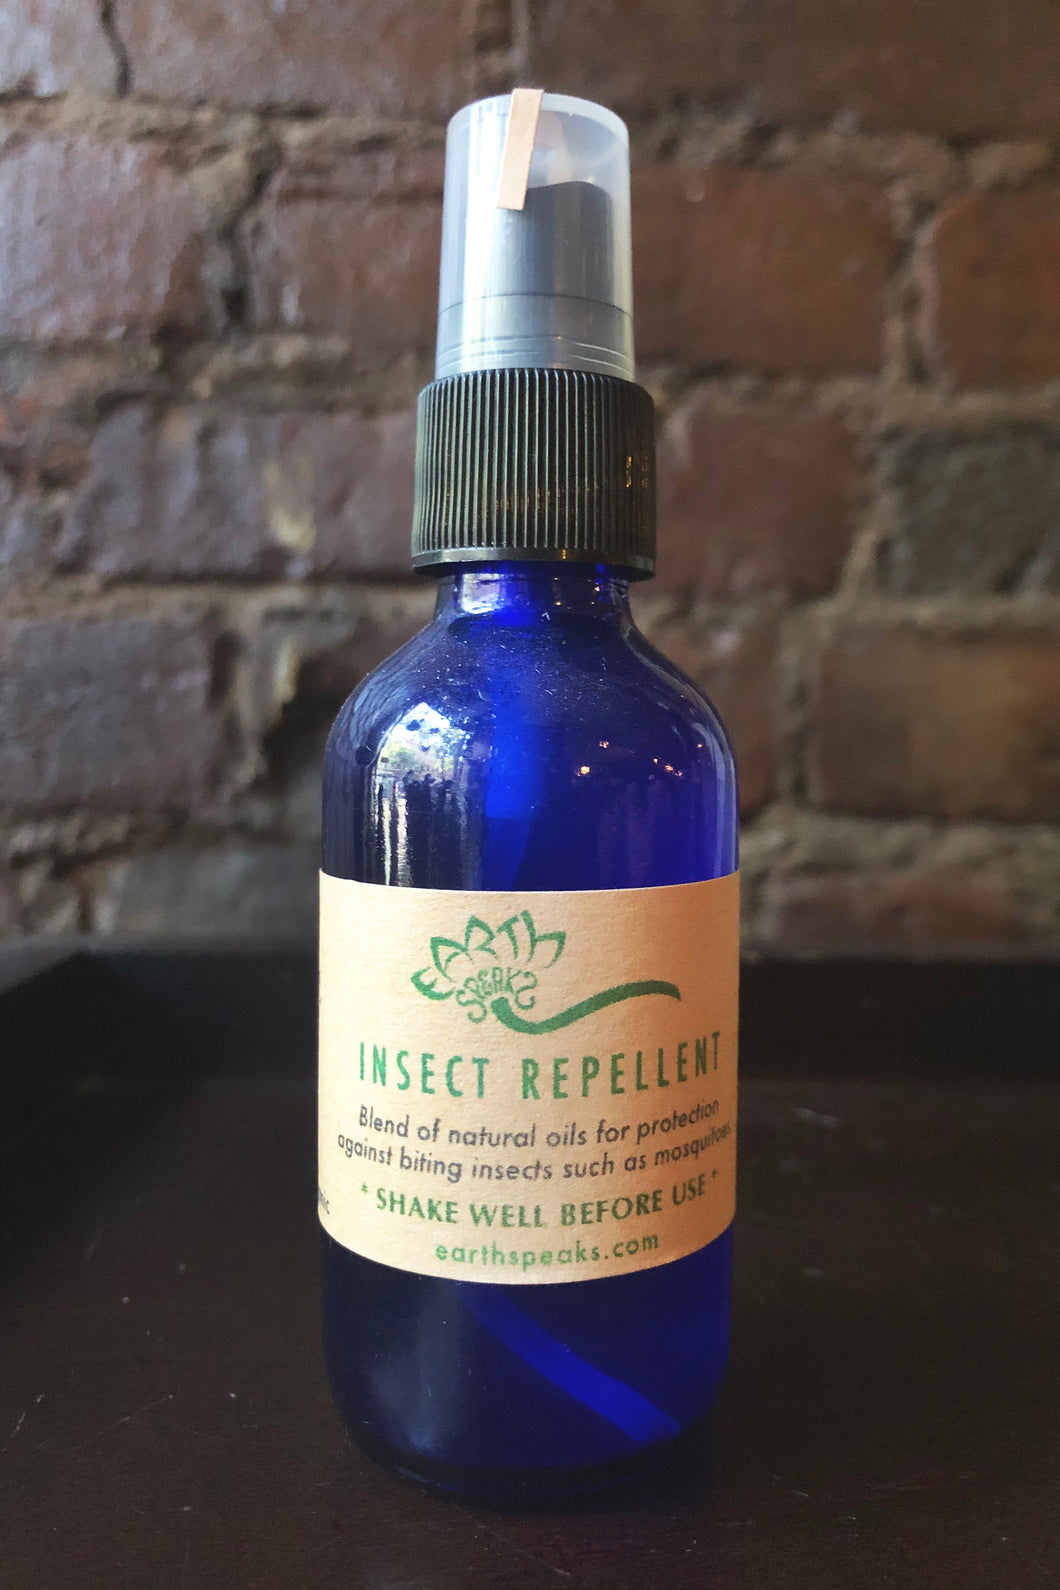 Rosemary & Eucalyptus Insect Repellent